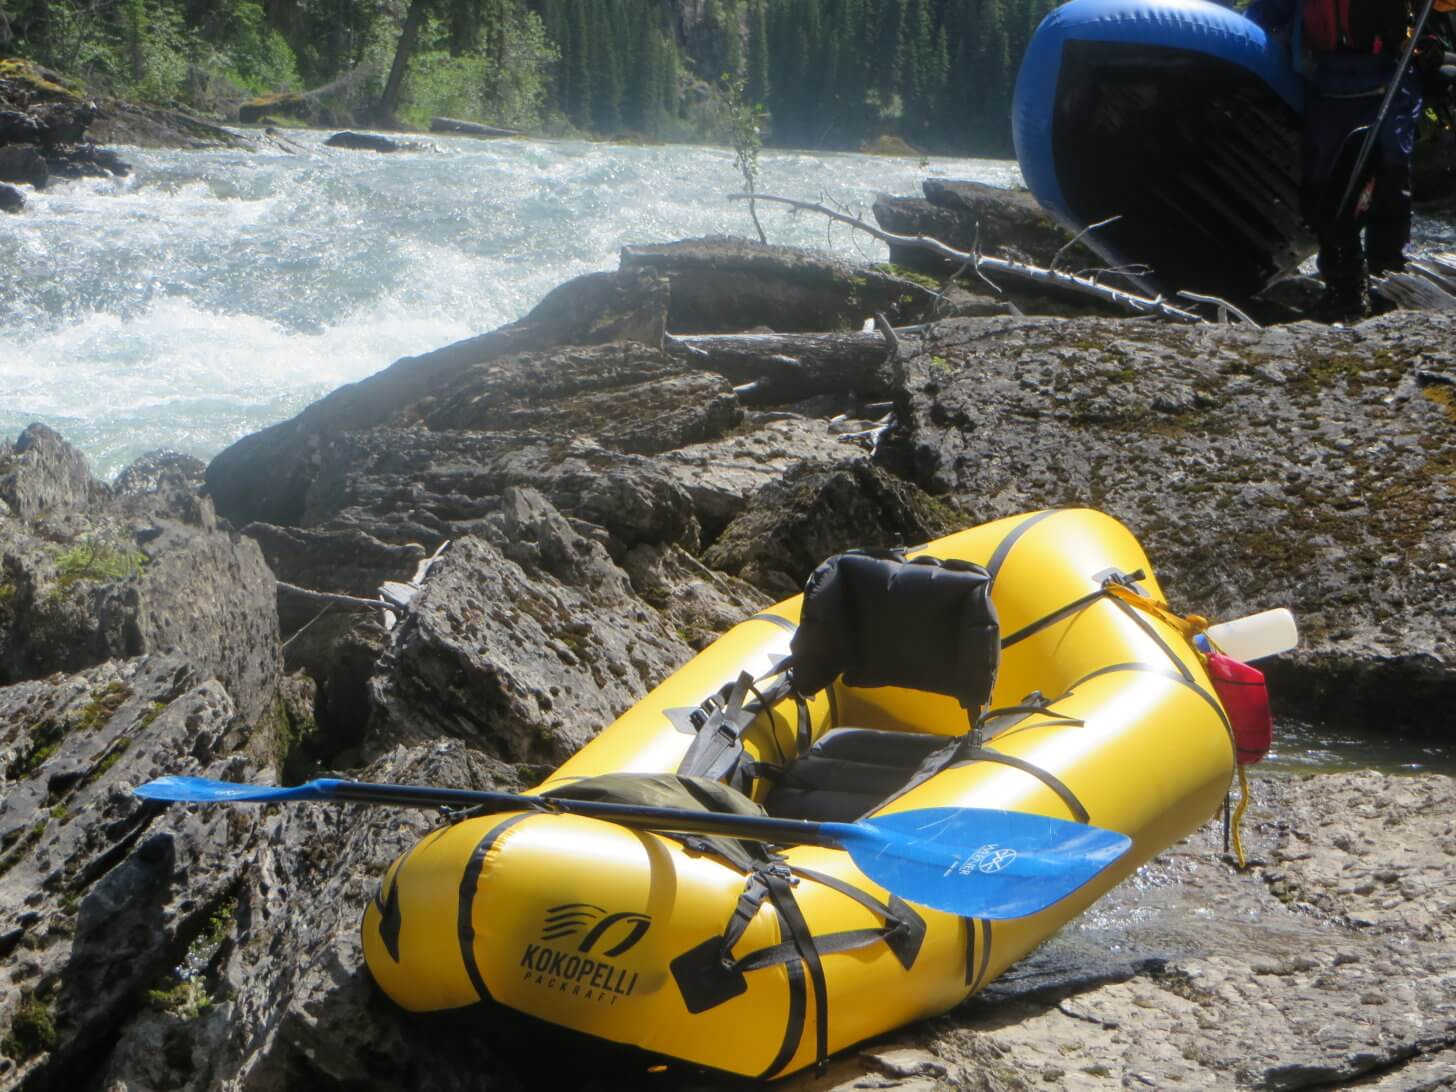 Packraft SOM Report: A self-bailing raft has several advantages in whitewater.